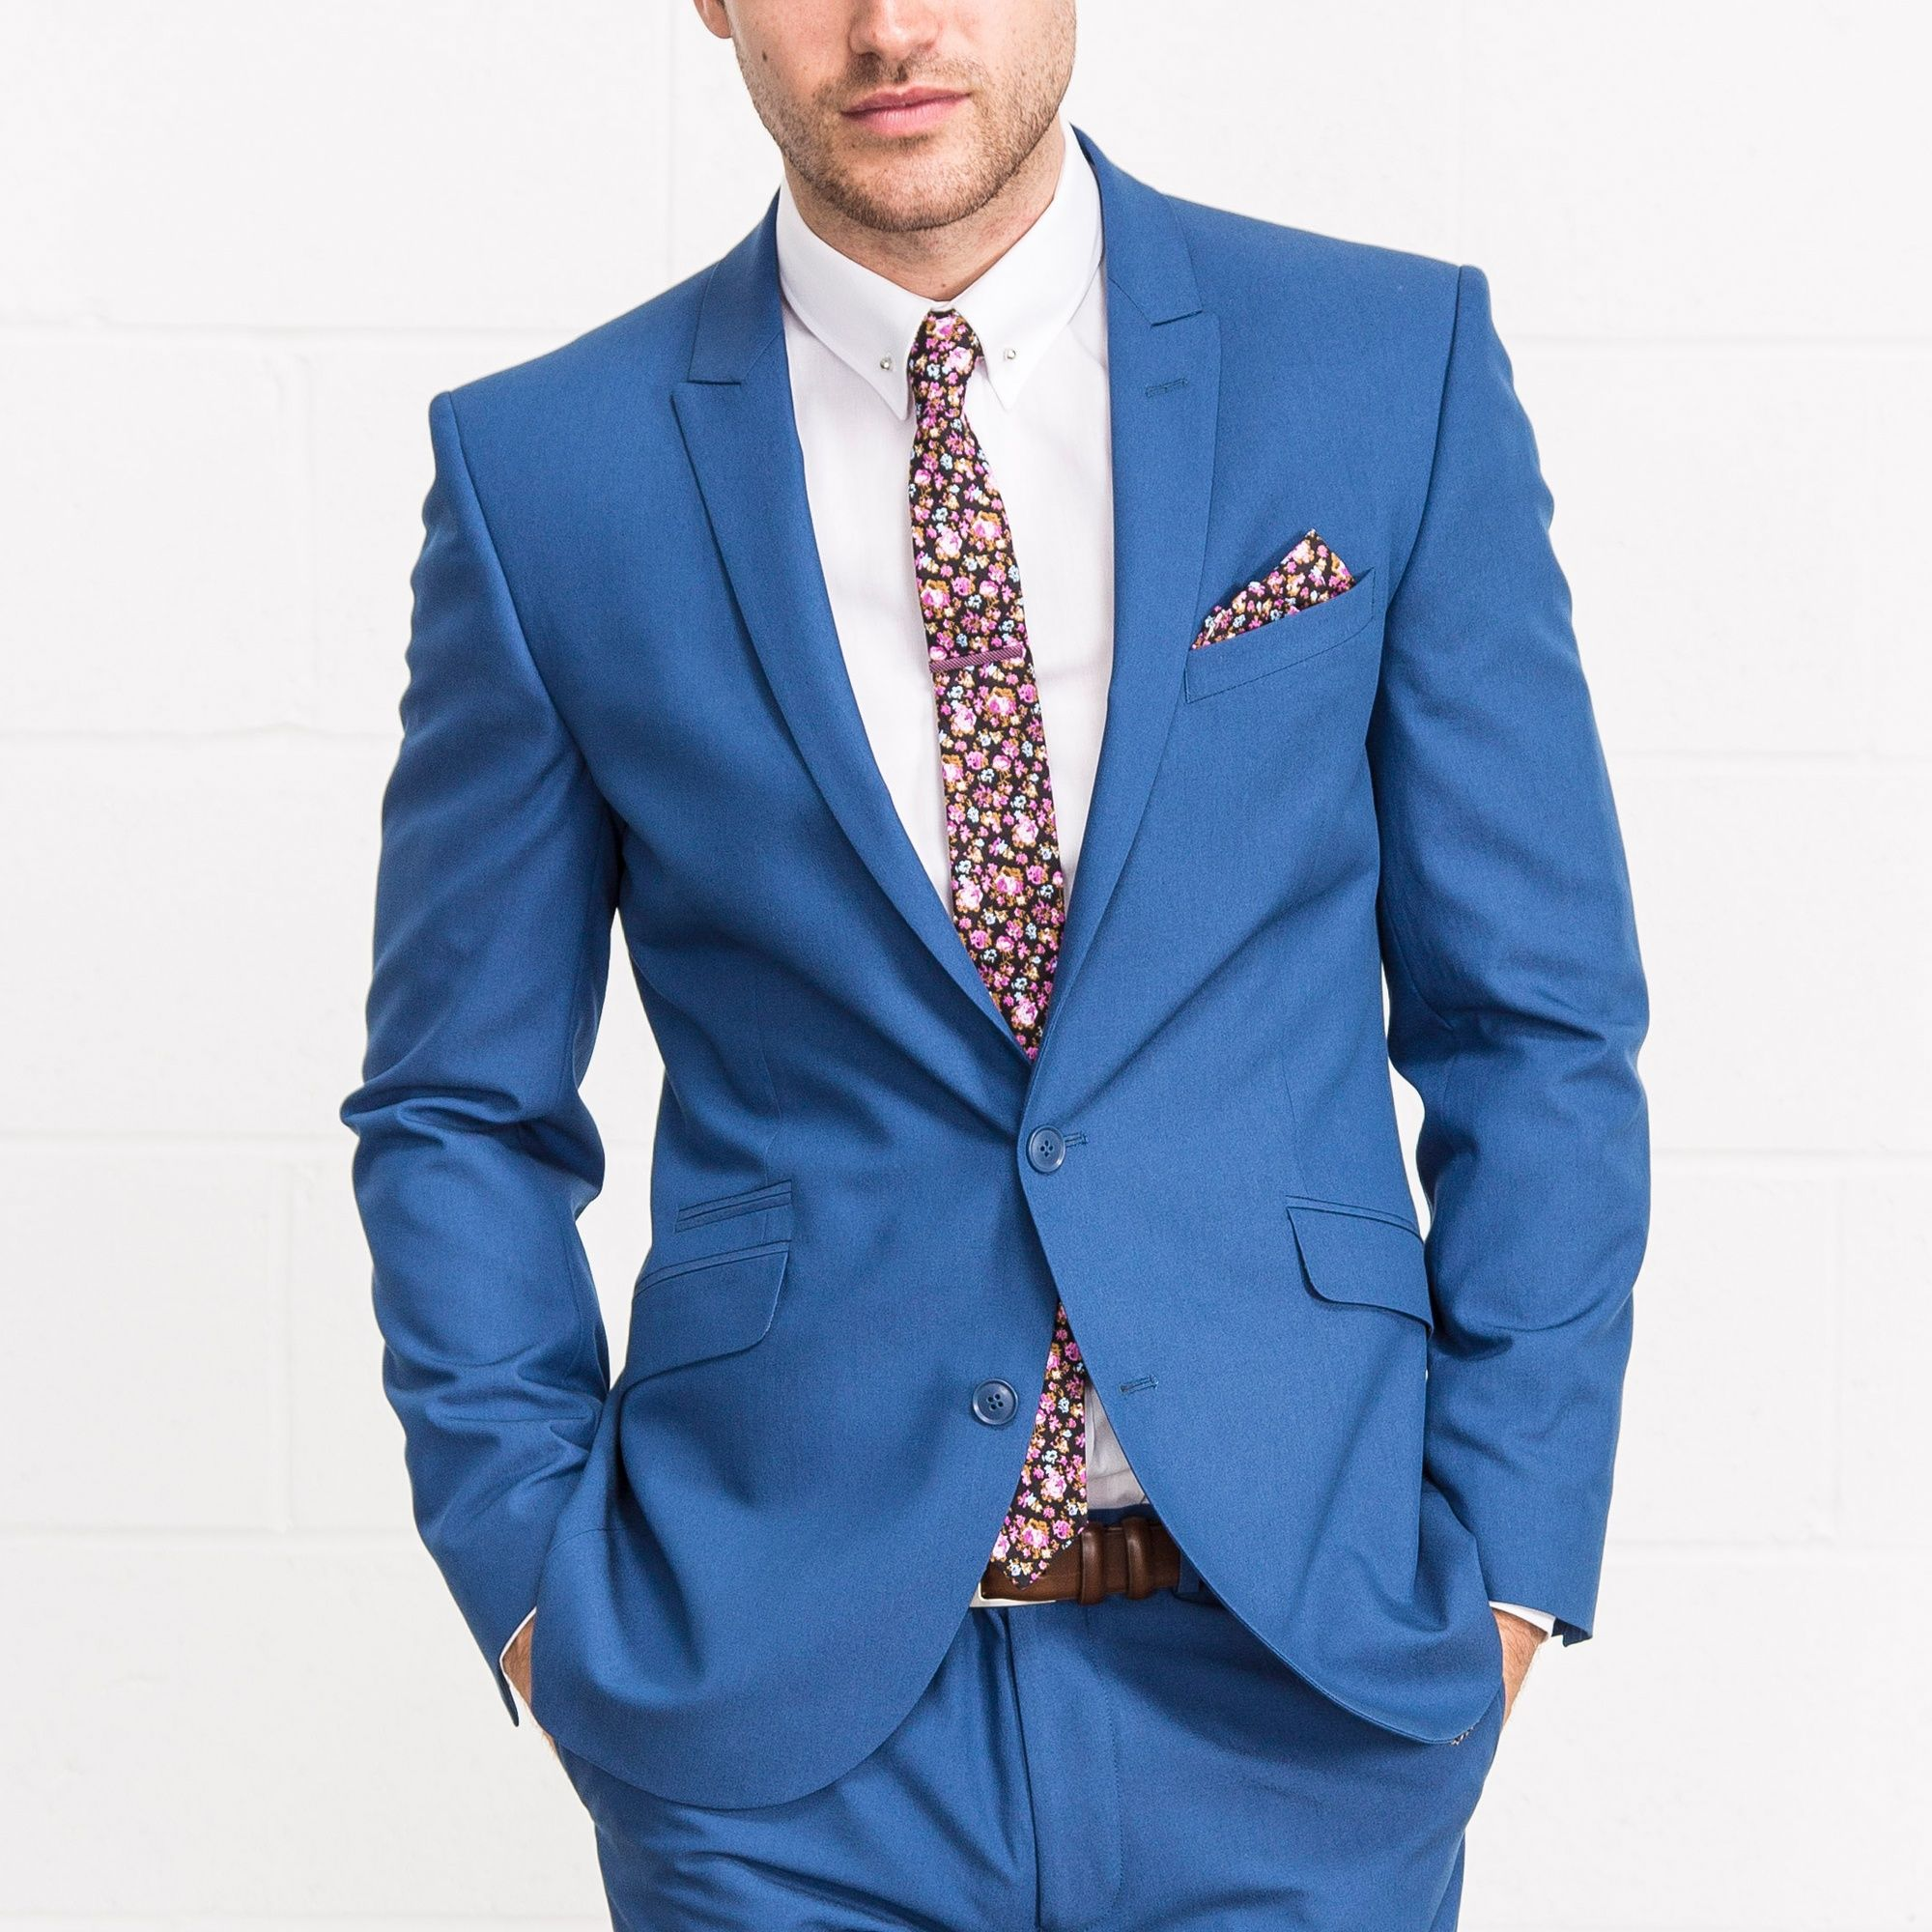 LAMBRETTA Slim Fit Bright Blue Two Piece Suit | Костюмы | Pinterest ...